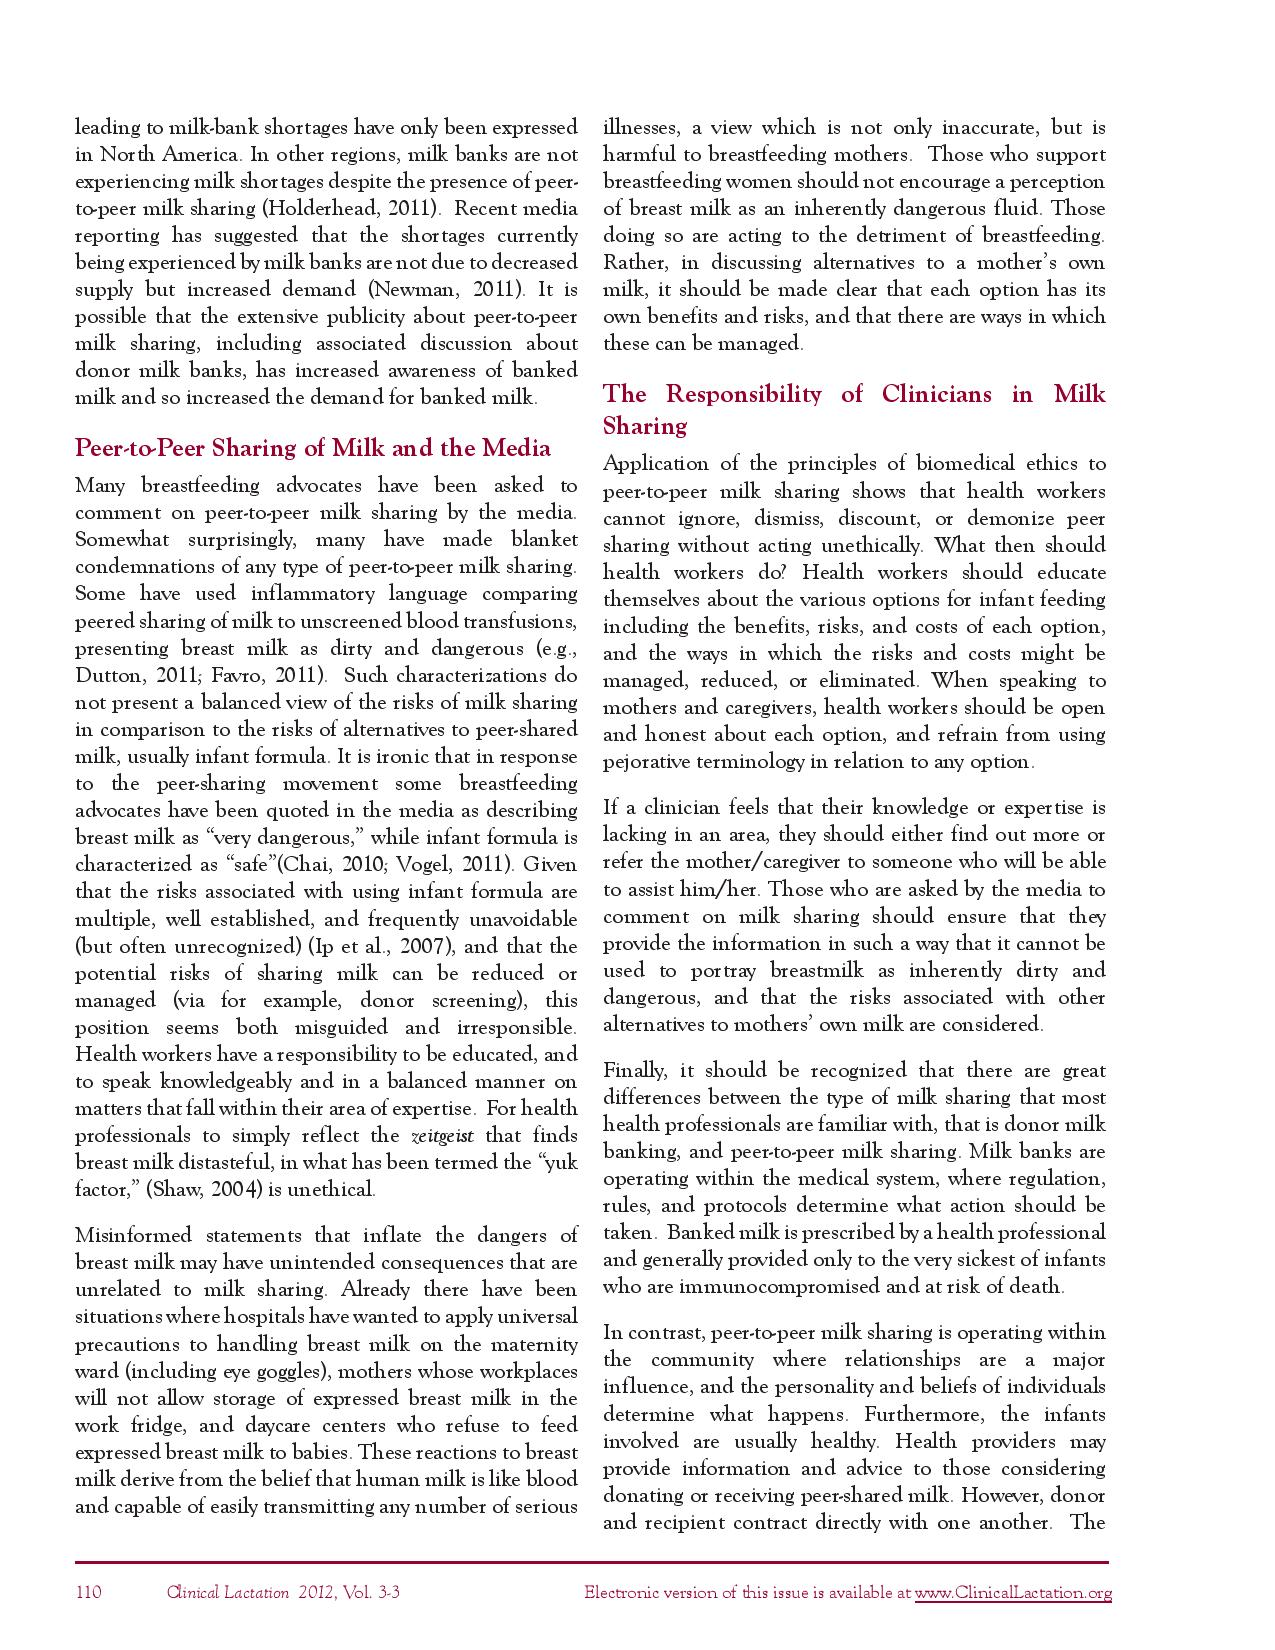 Gribble 2012 Clinical Lactation-page-003